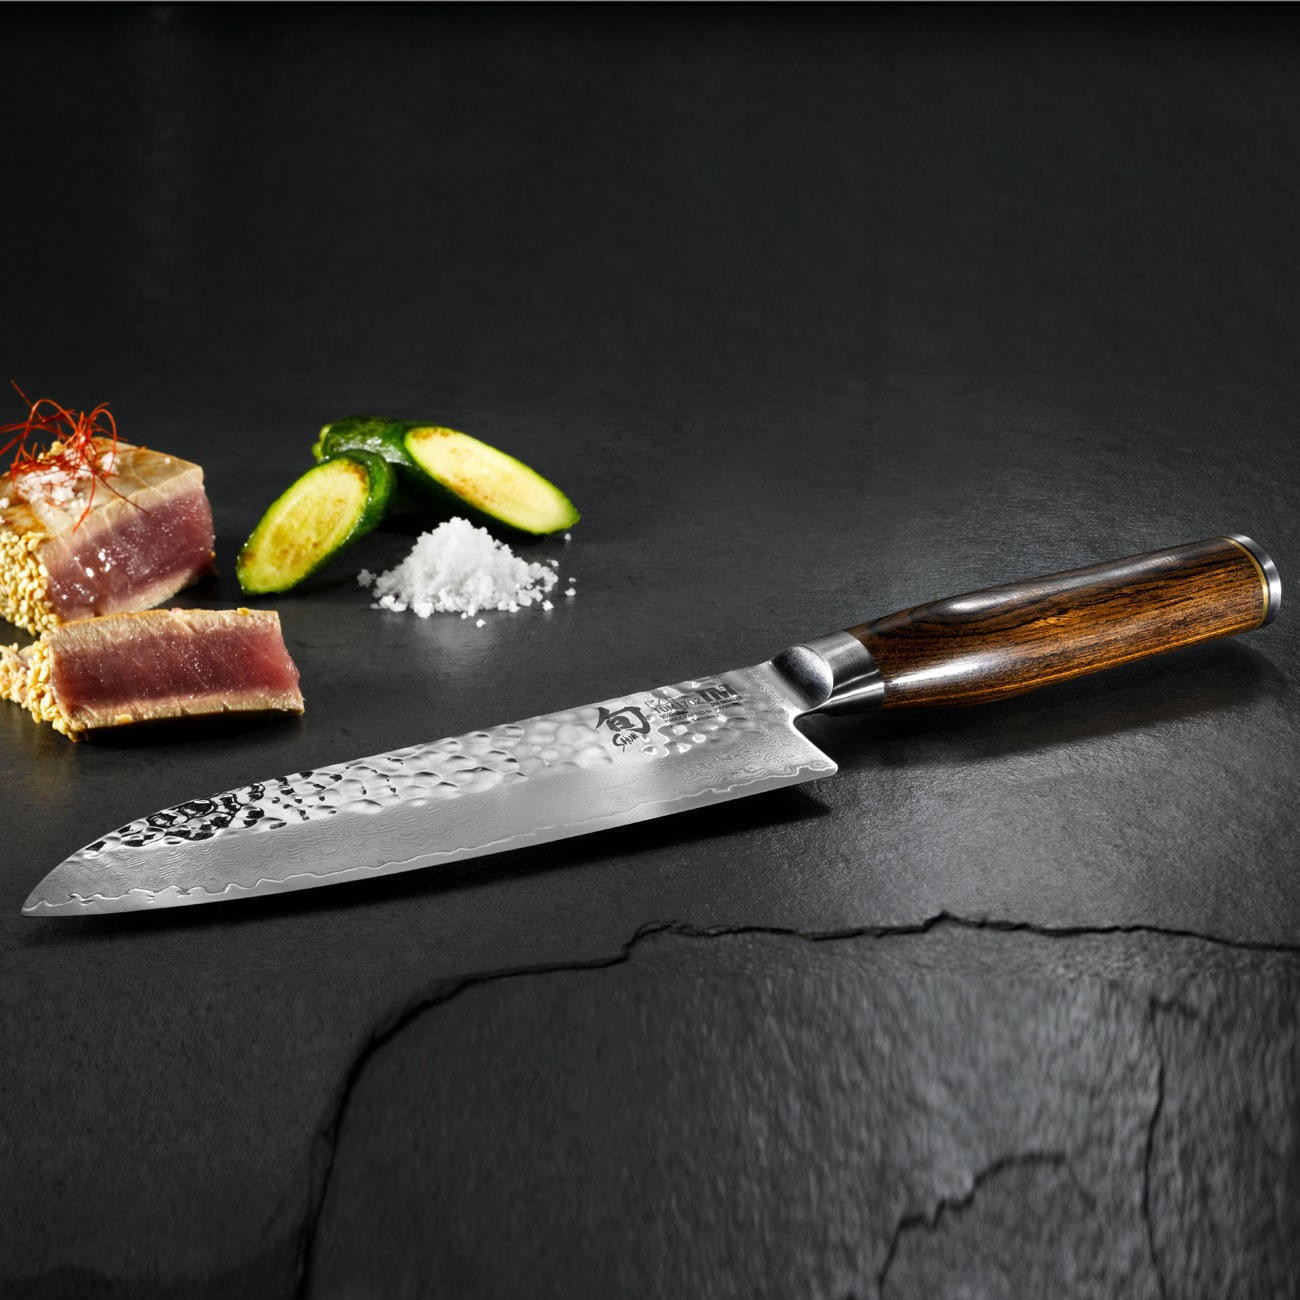 kai shun premier tim m lzer series santoku knife 14cm. Black Bedroom Furniture Sets. Home Design Ideas